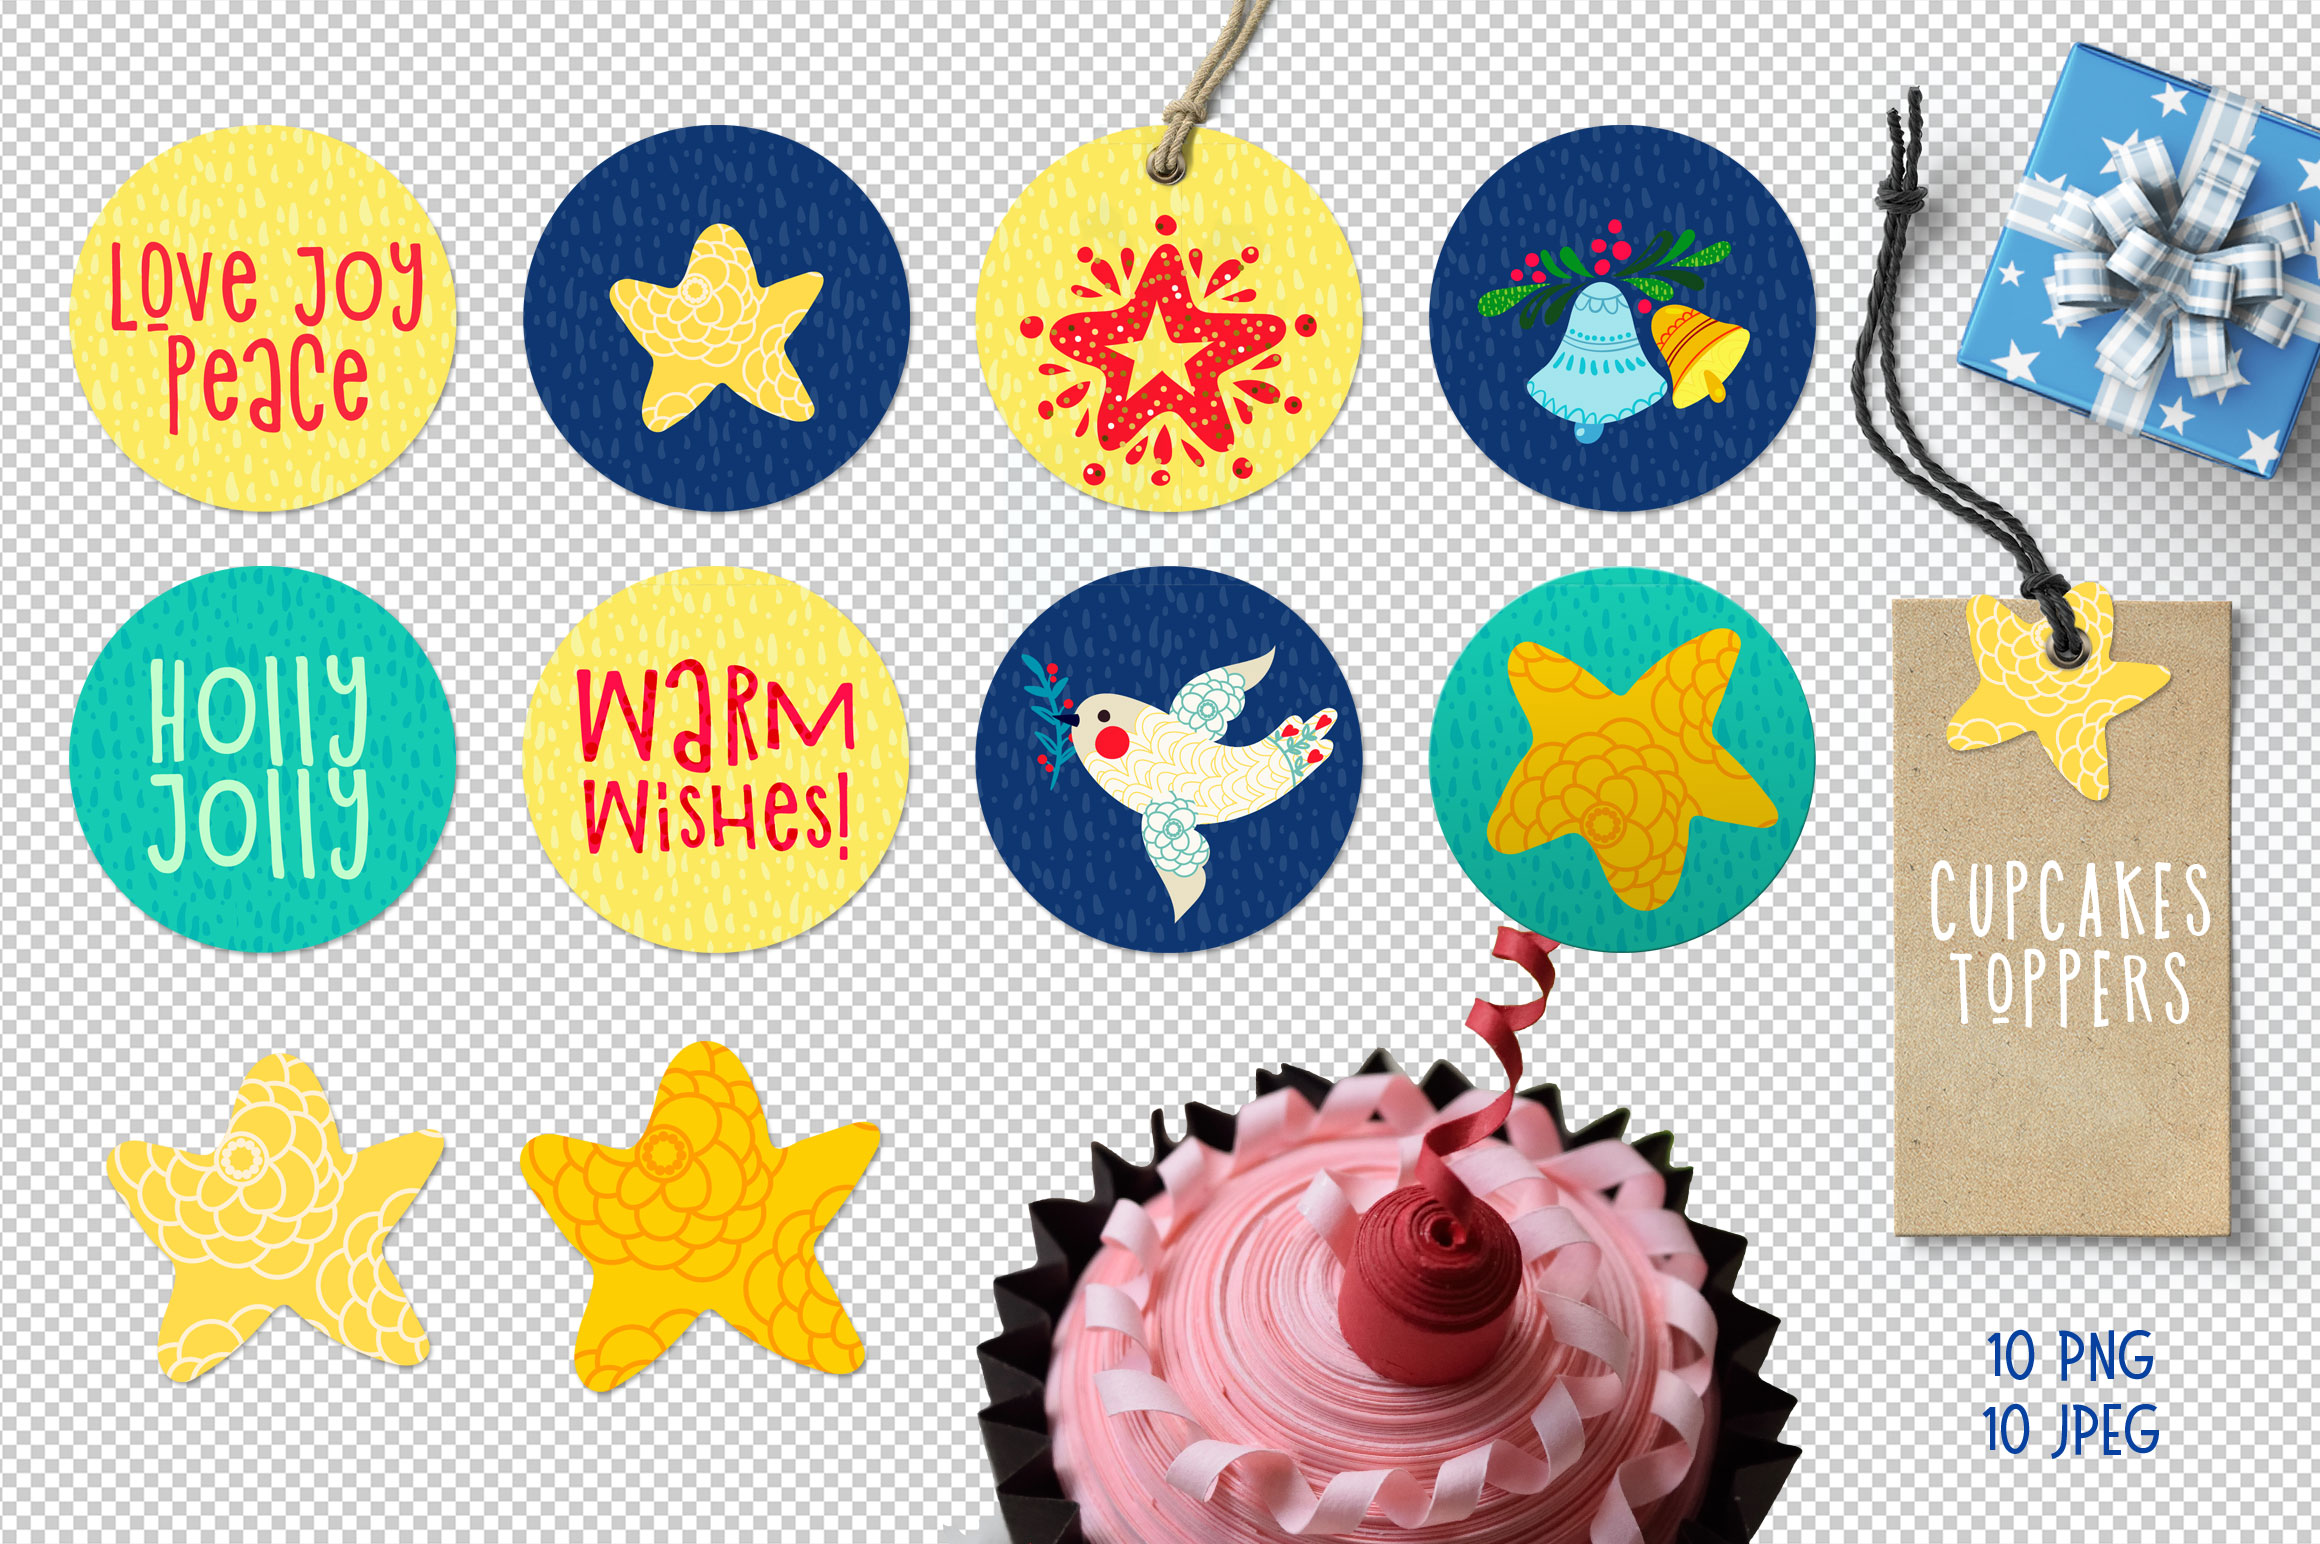 Christmas Gift Tag, cupcakes toppers example image 4